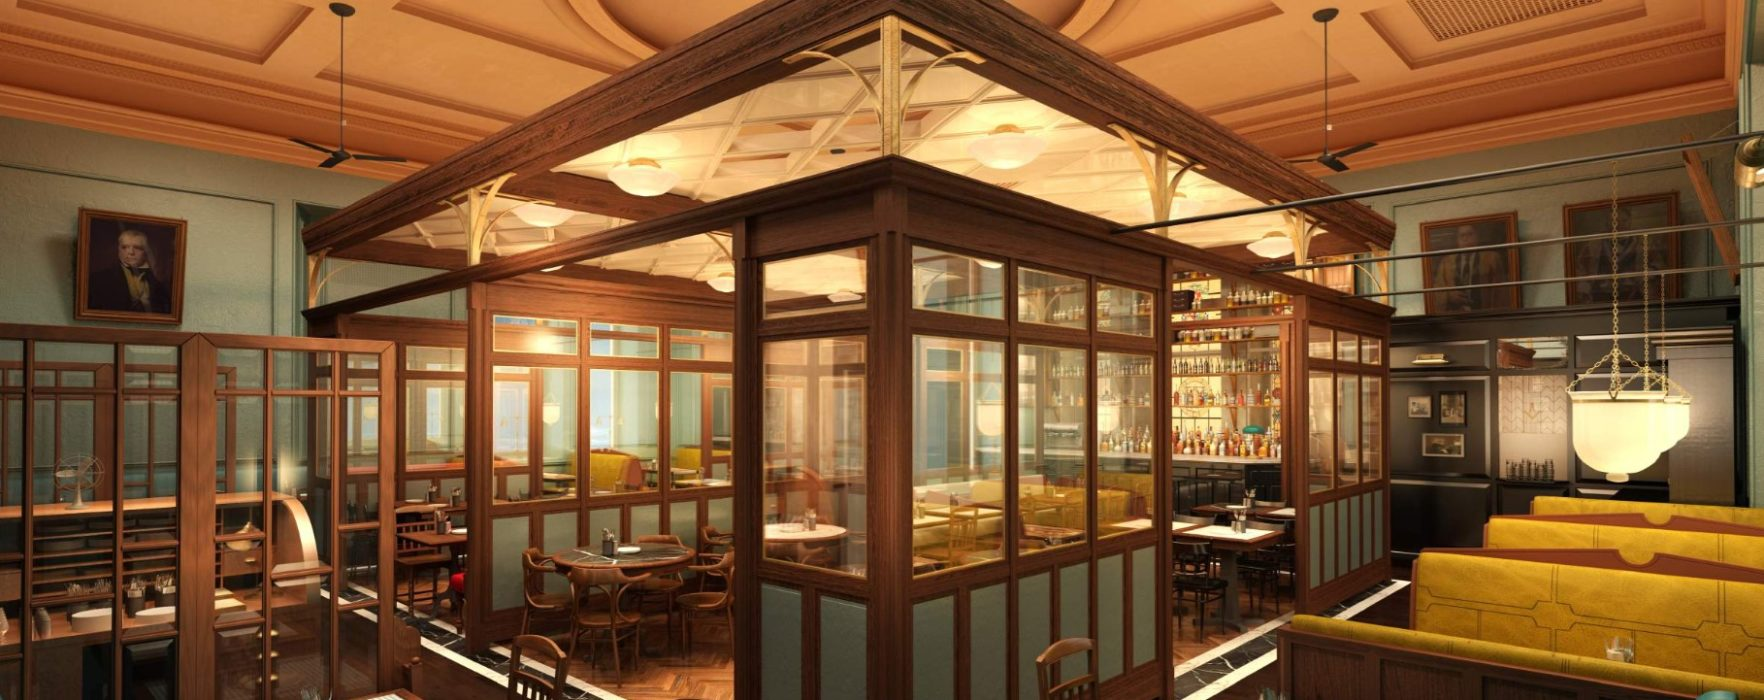 Dishoom set to open in Manchester Hall this winter